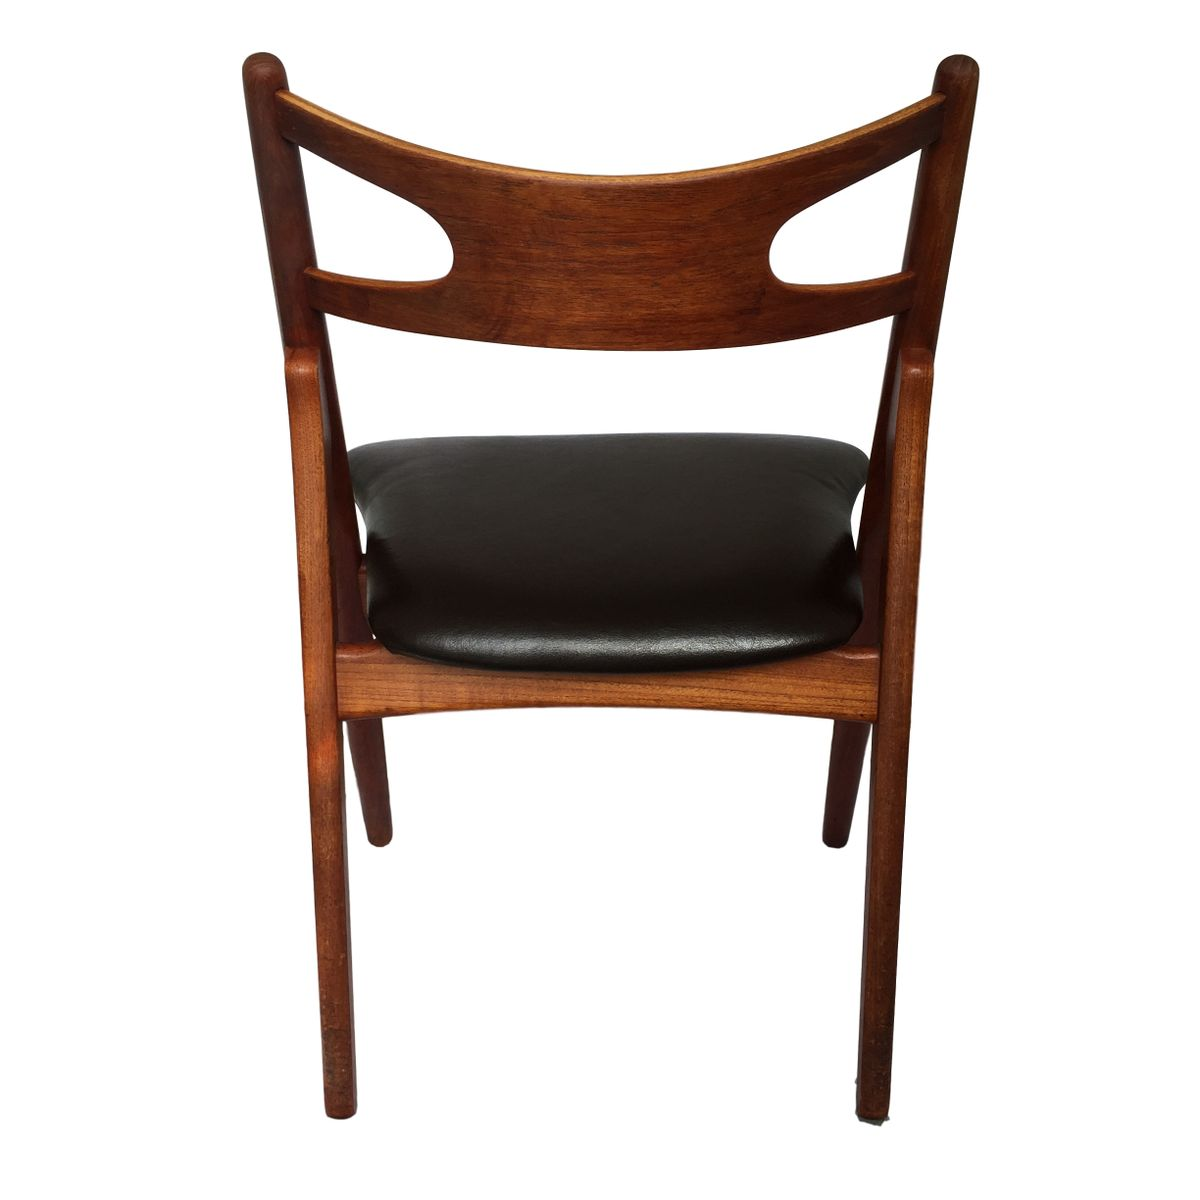 ch 29 s gebock st hle aus teak von hans wegner f r carl hansen s n 1950er 12er set bei. Black Bedroom Furniture Sets. Home Design Ideas